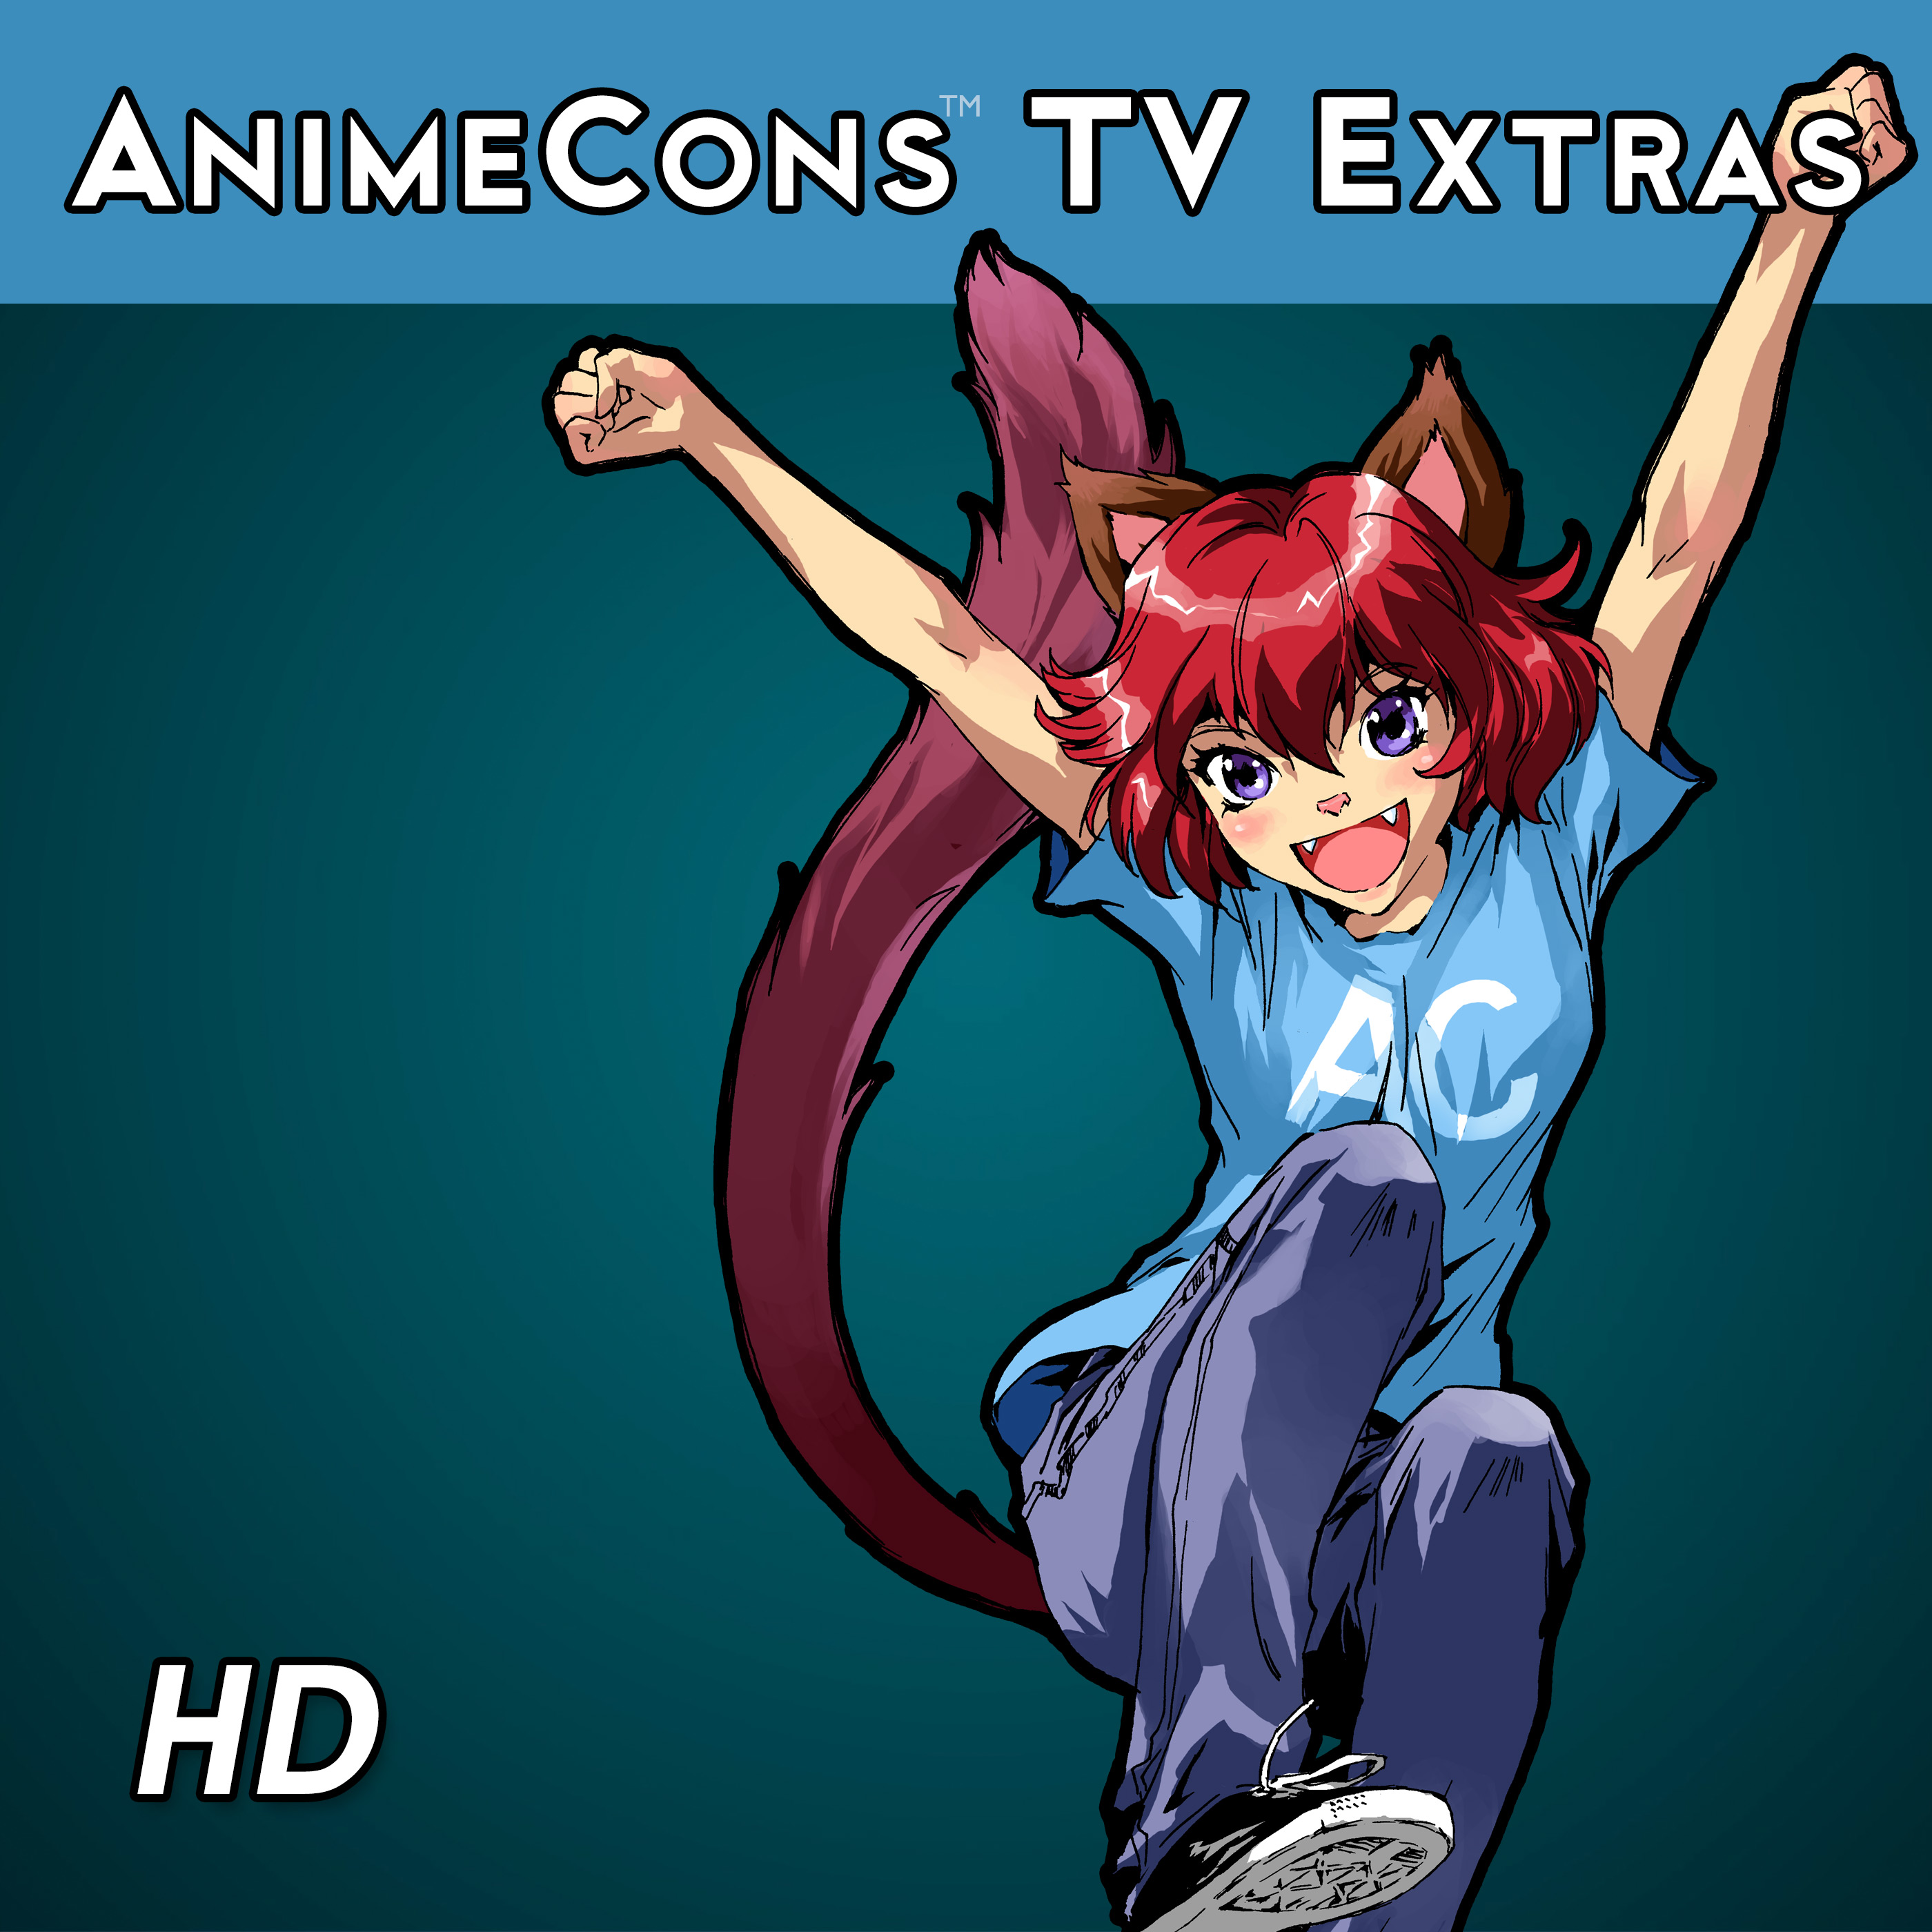 AnimeCons TV Extras (HD)